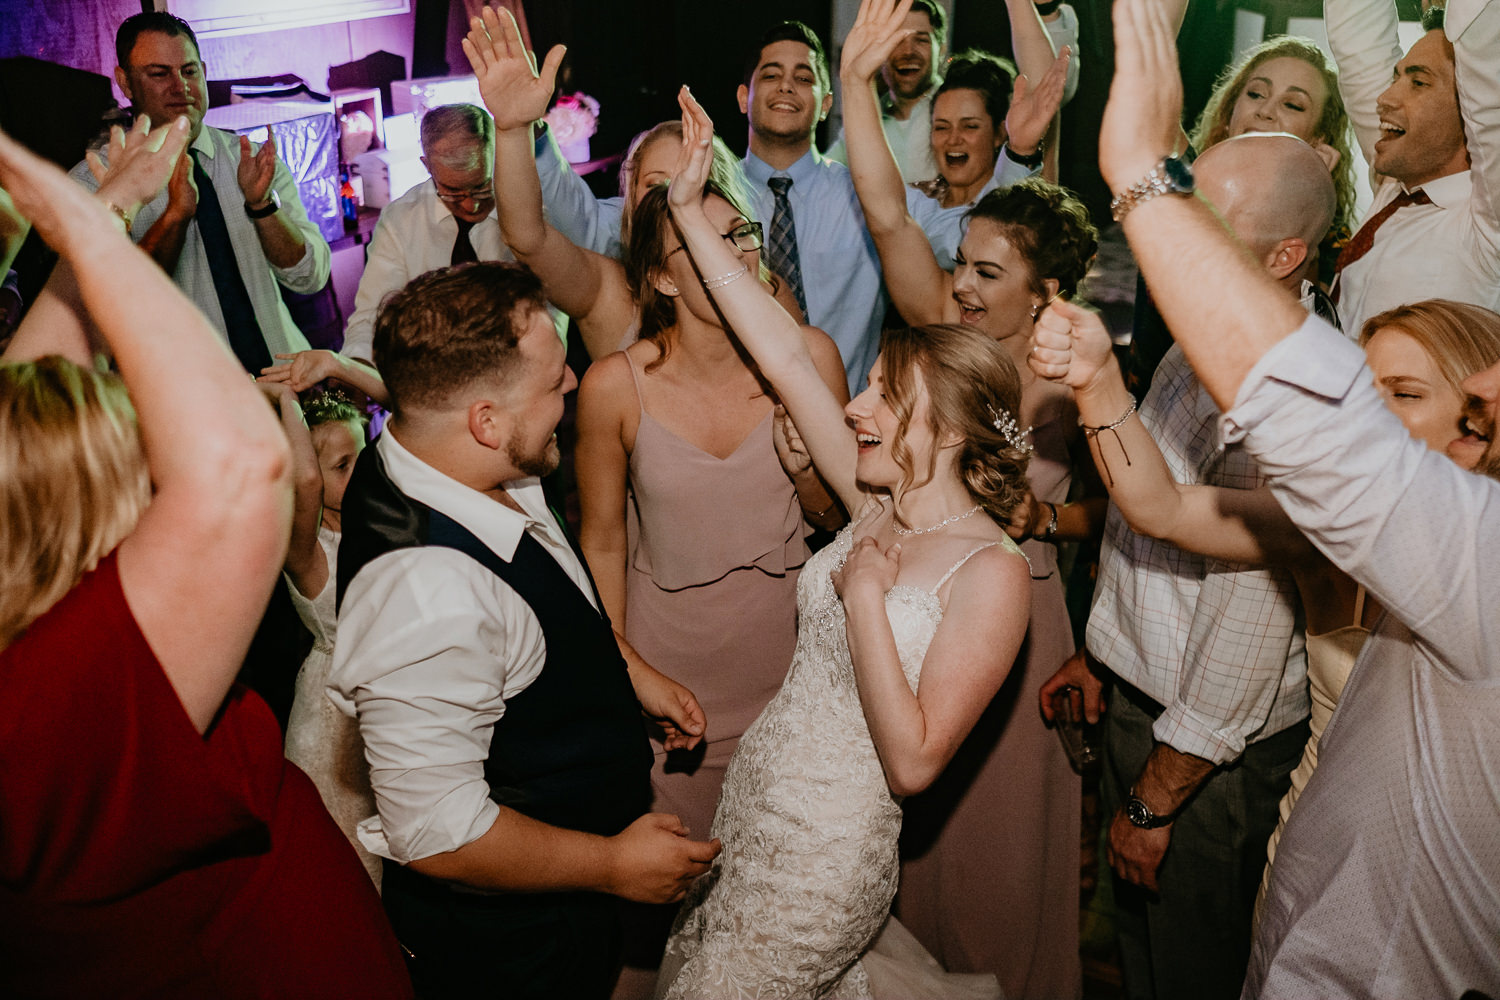 newlyweds dancing hands surrounded by all friends everyone's hands in the air